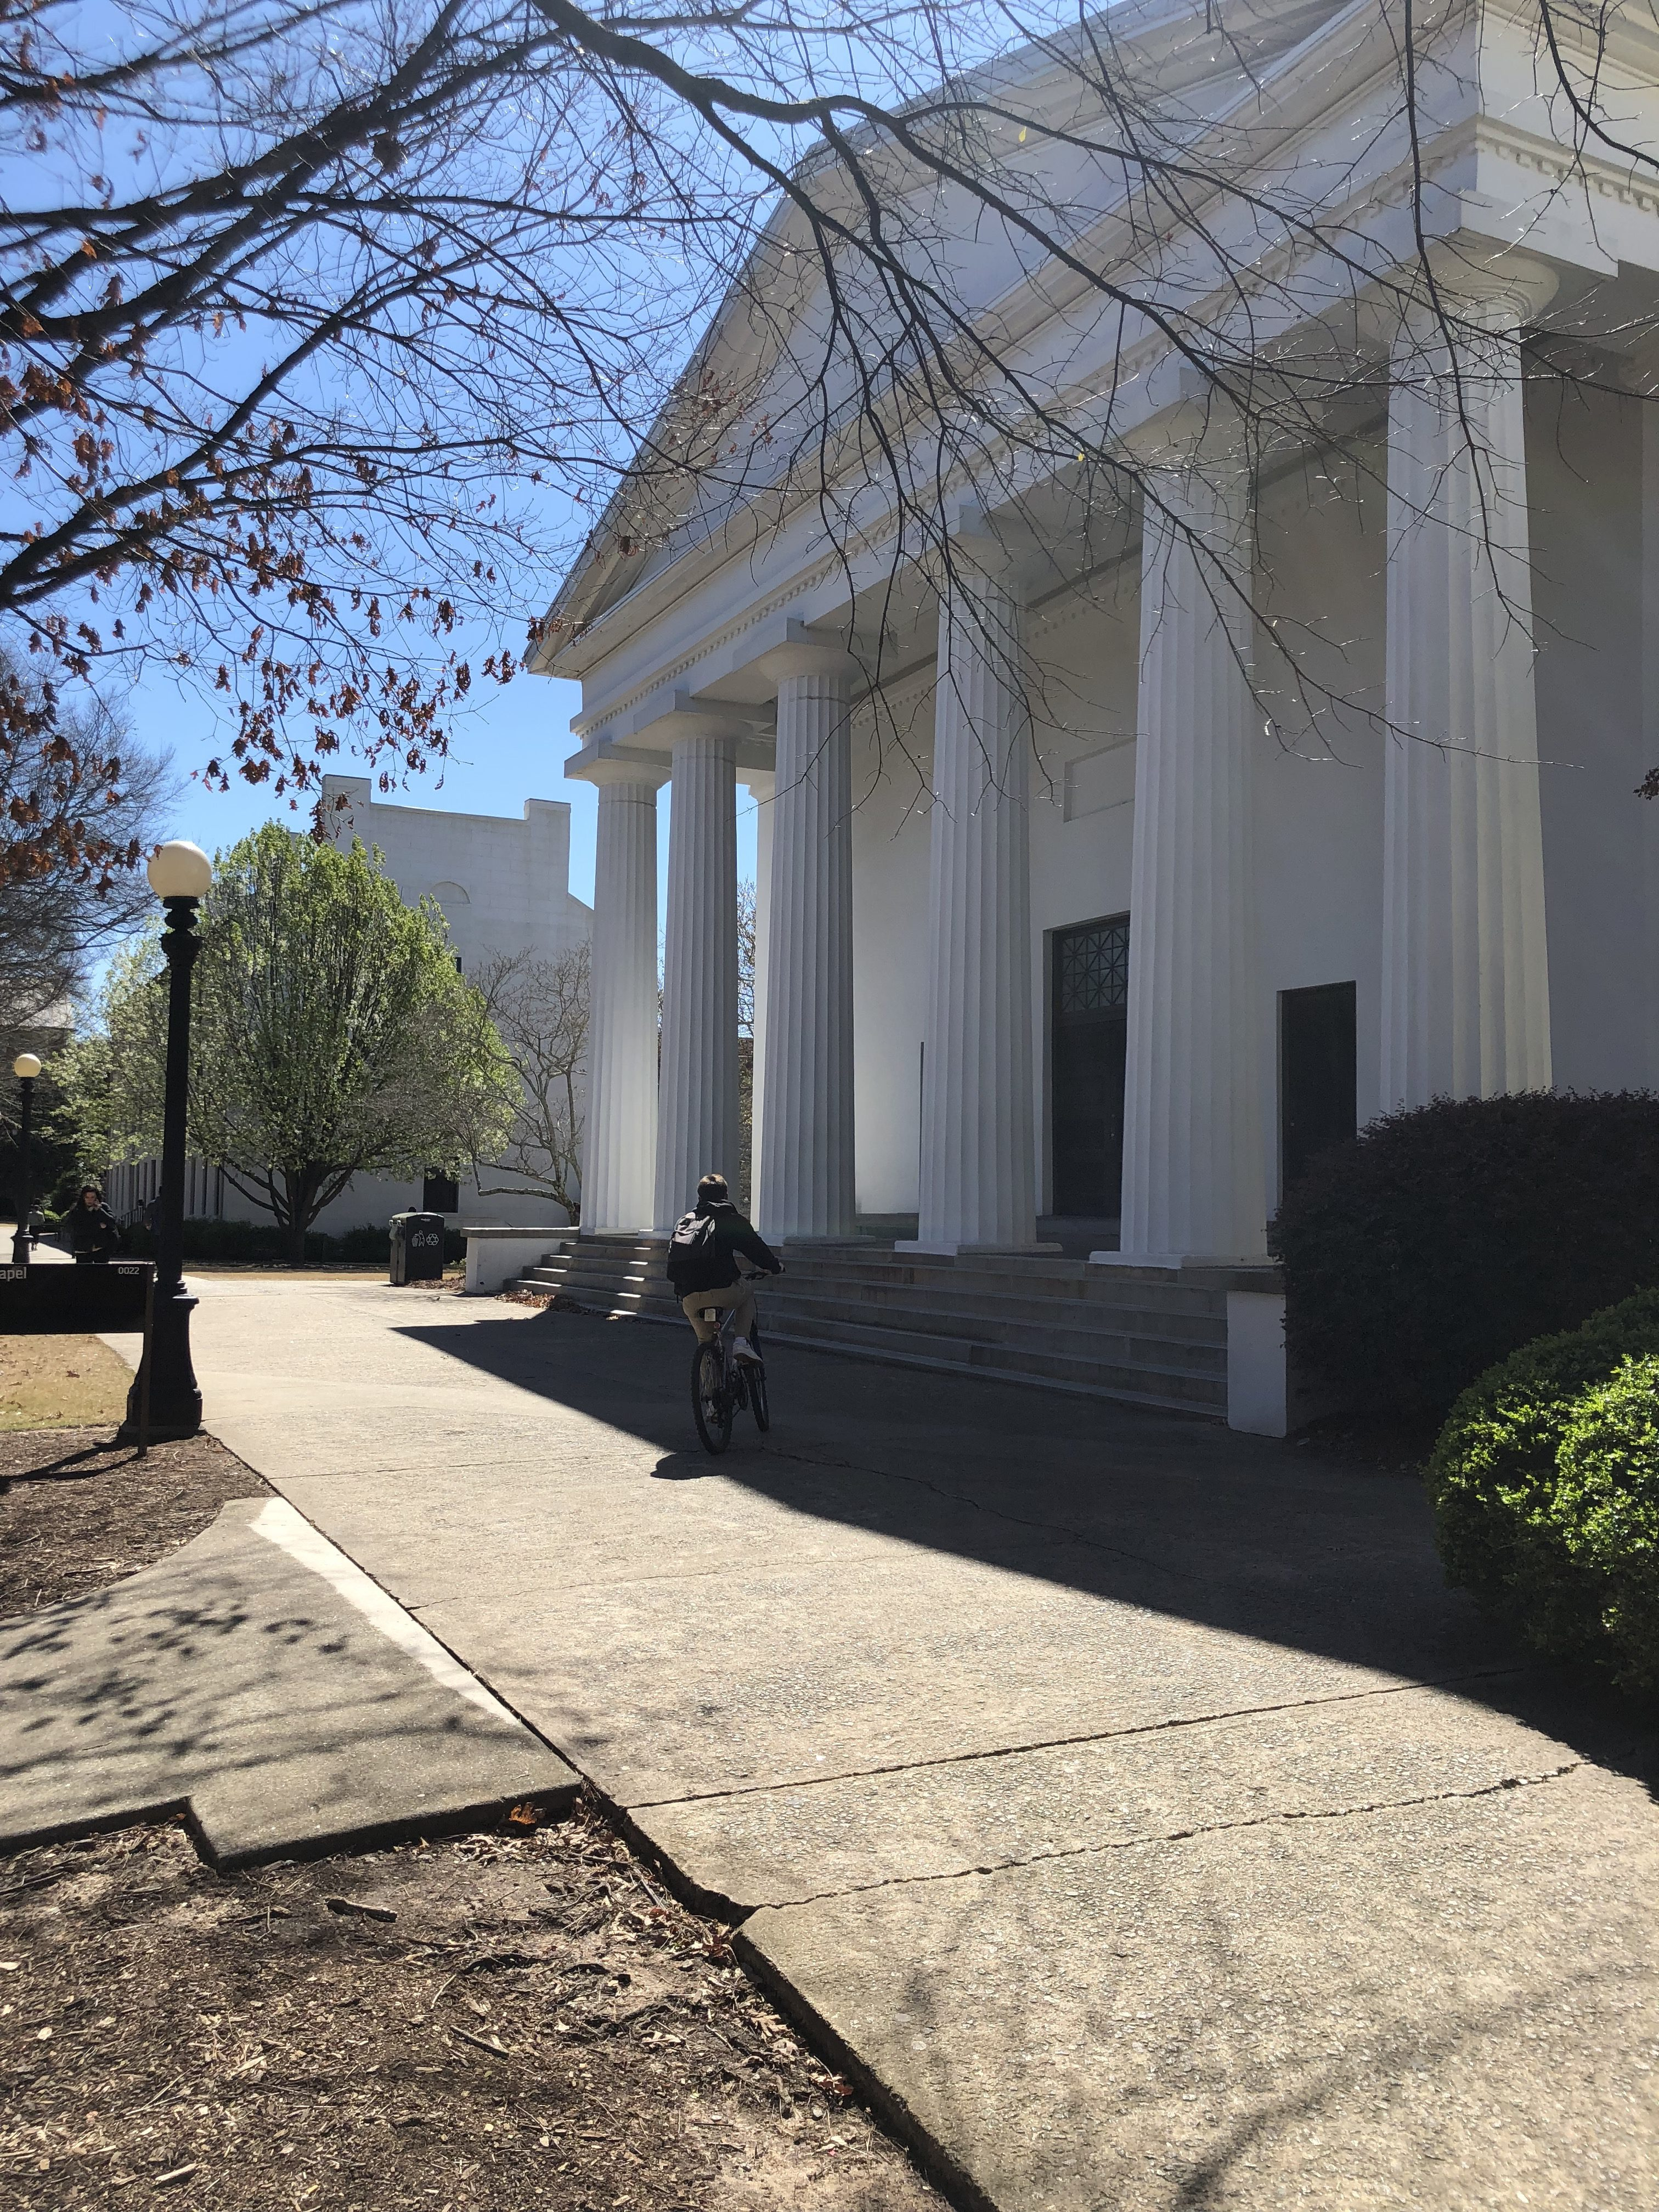 UGA's historic chapel, the site where a new memorial will be placed.